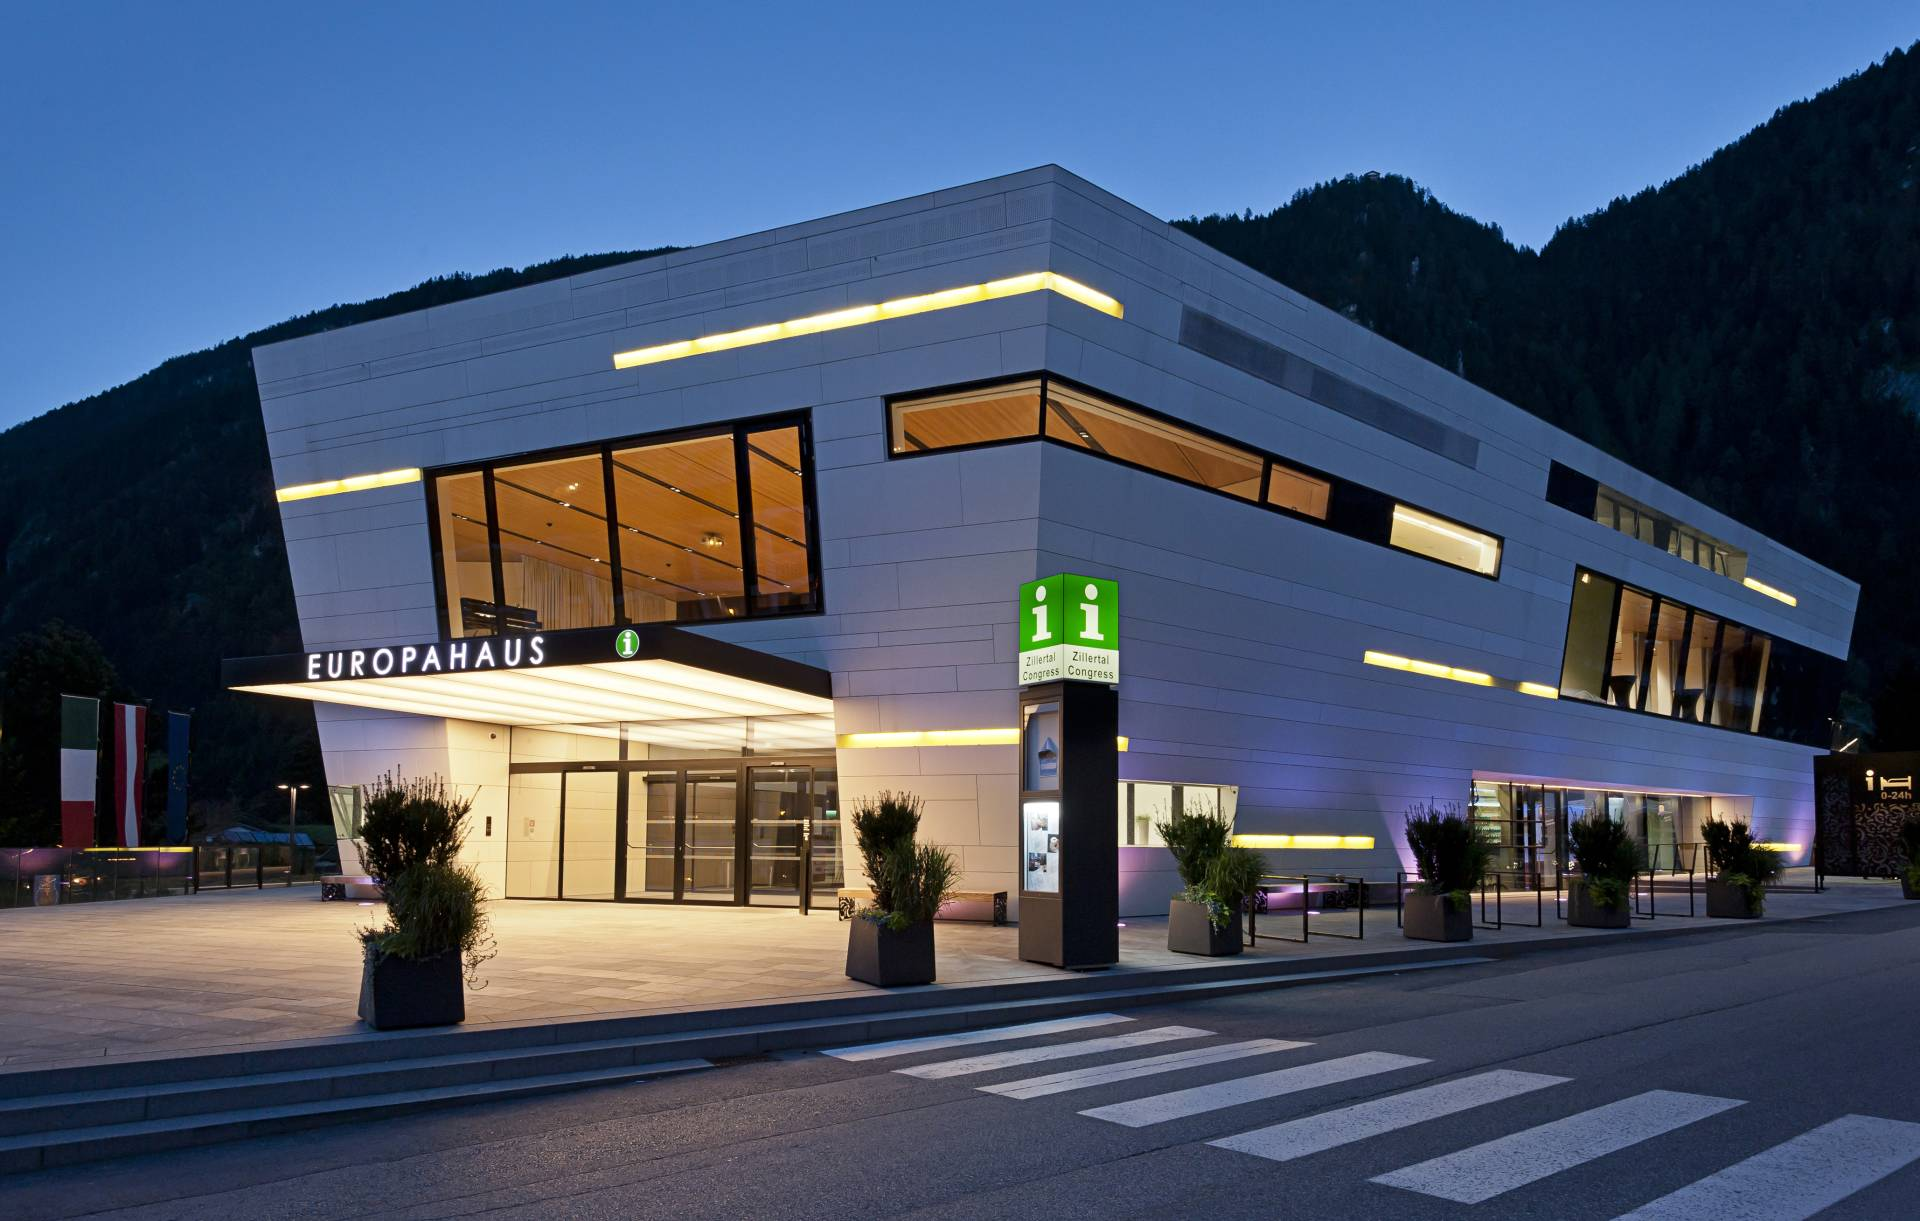 Europahaus in Mayrhofen in the evening